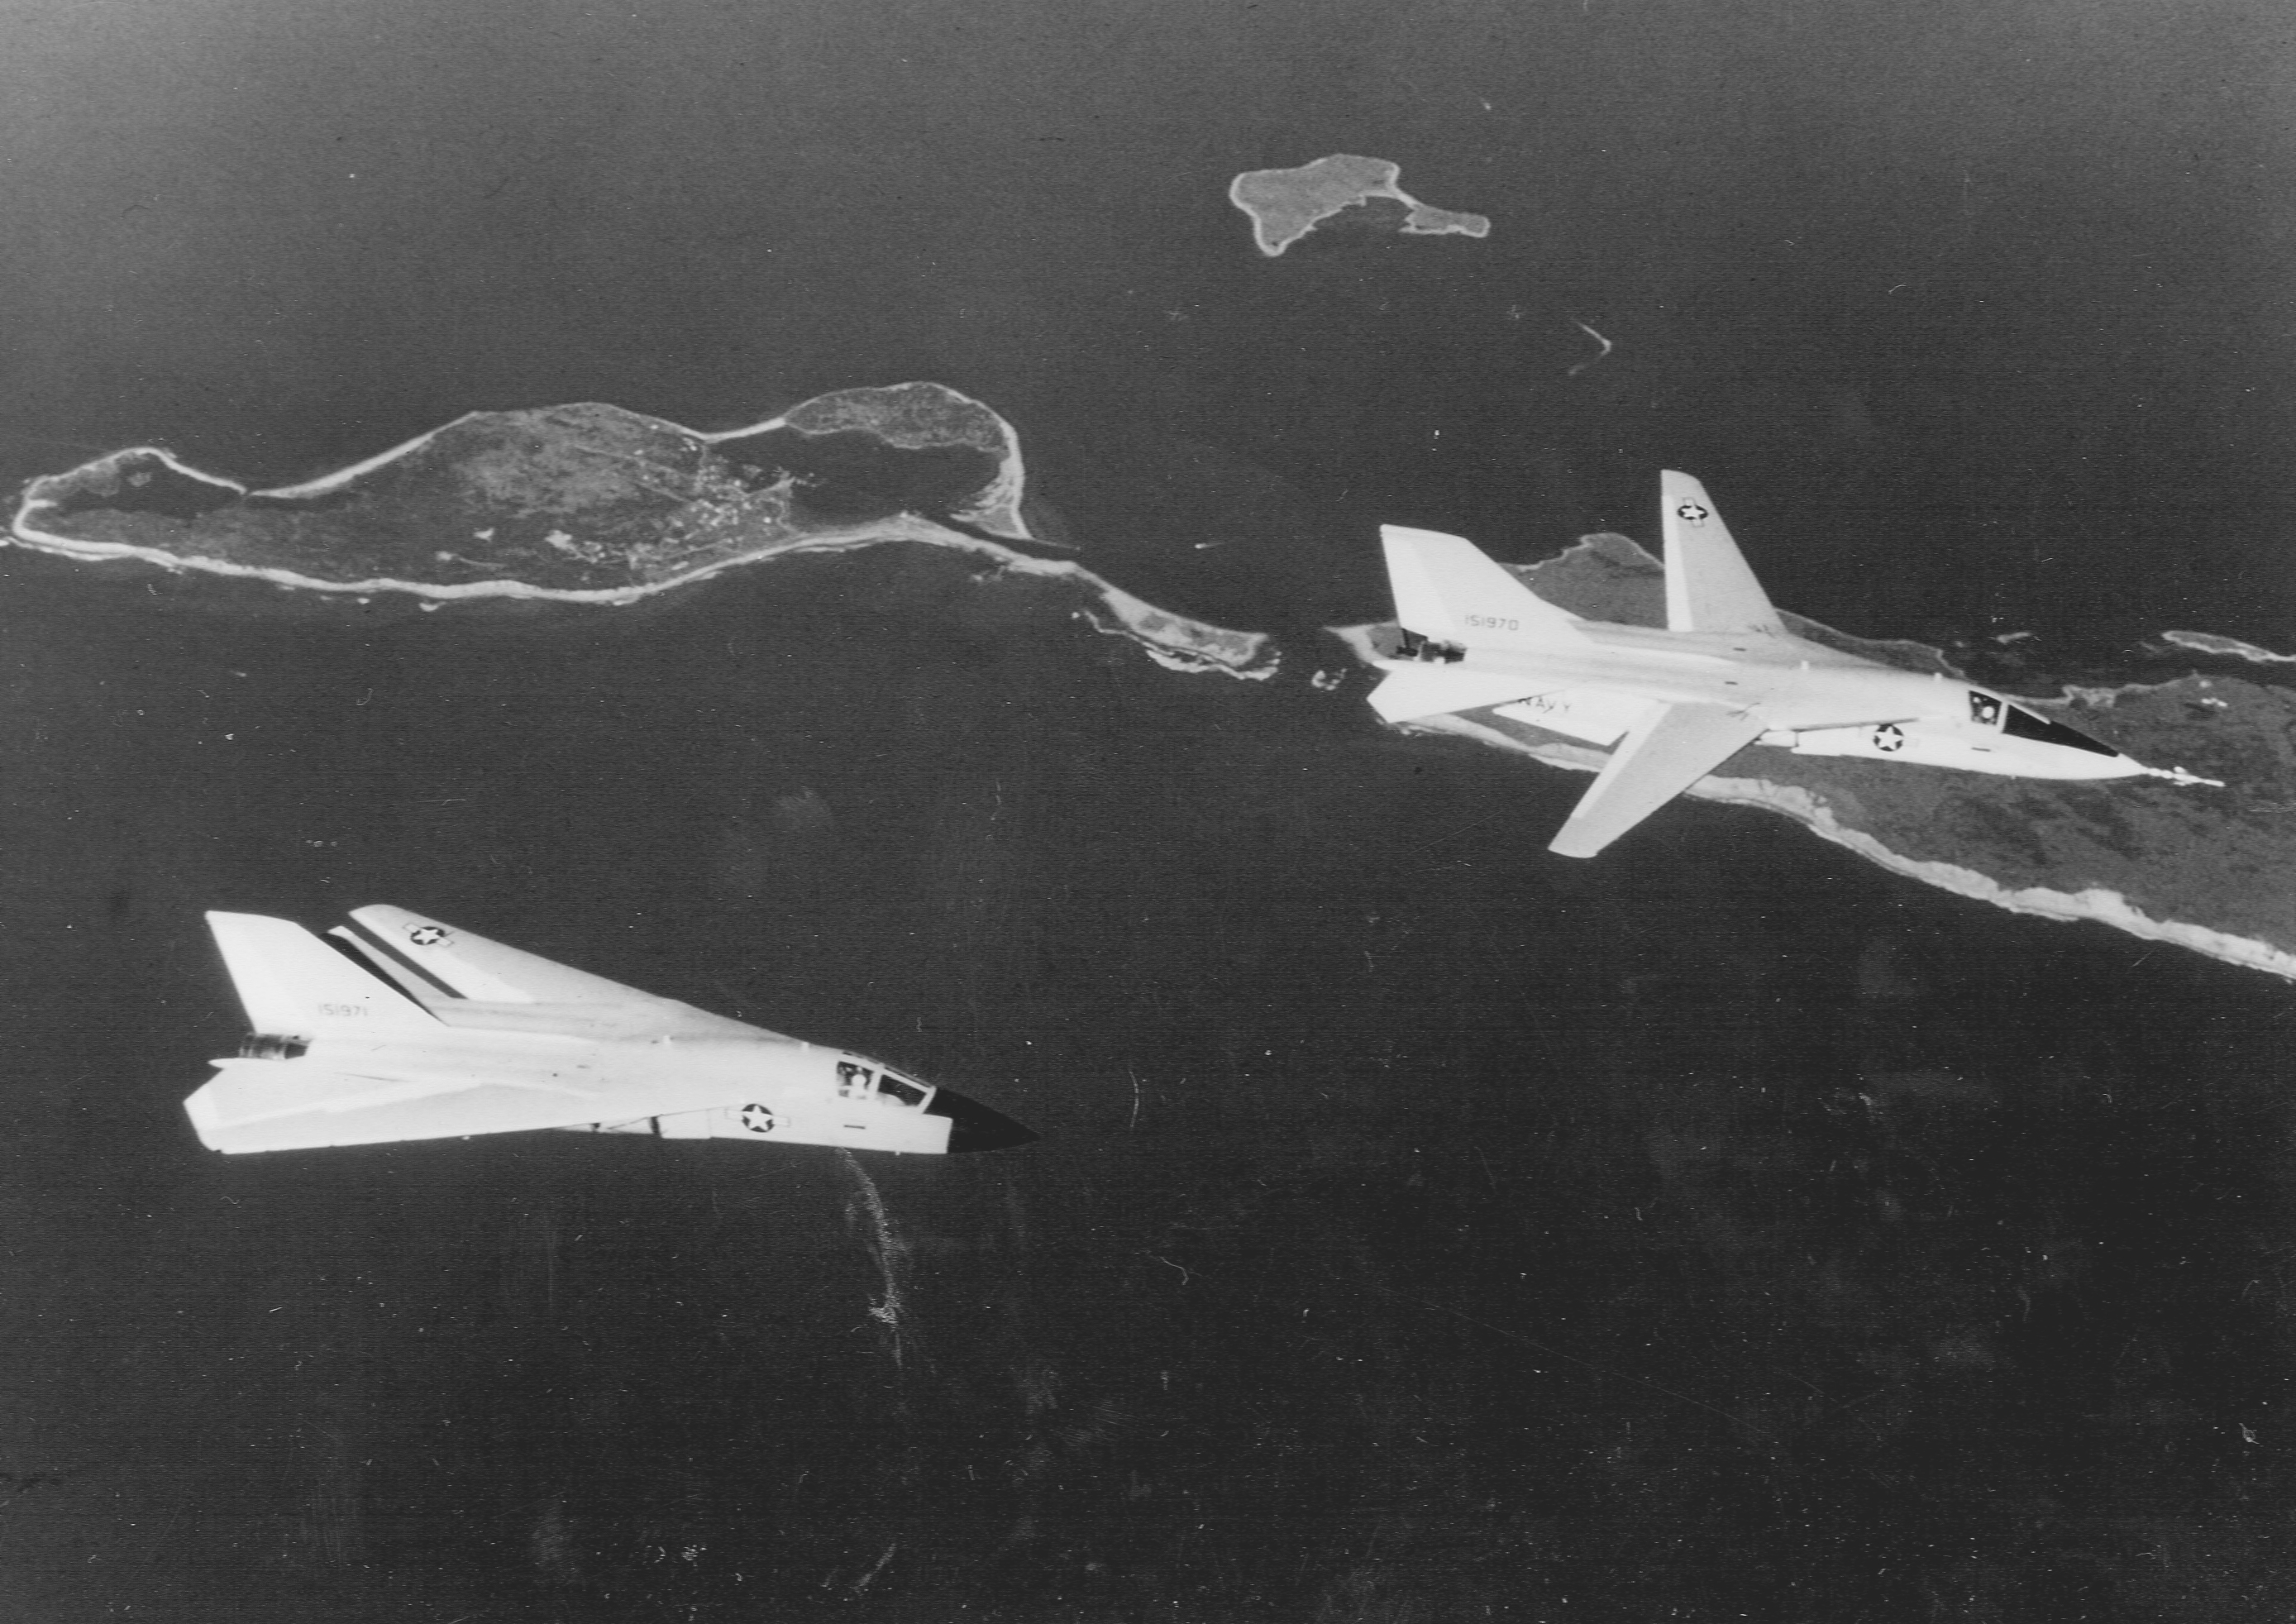 File:F-111B fighters over Long Island c1965.jpg - Wikimedia Commons